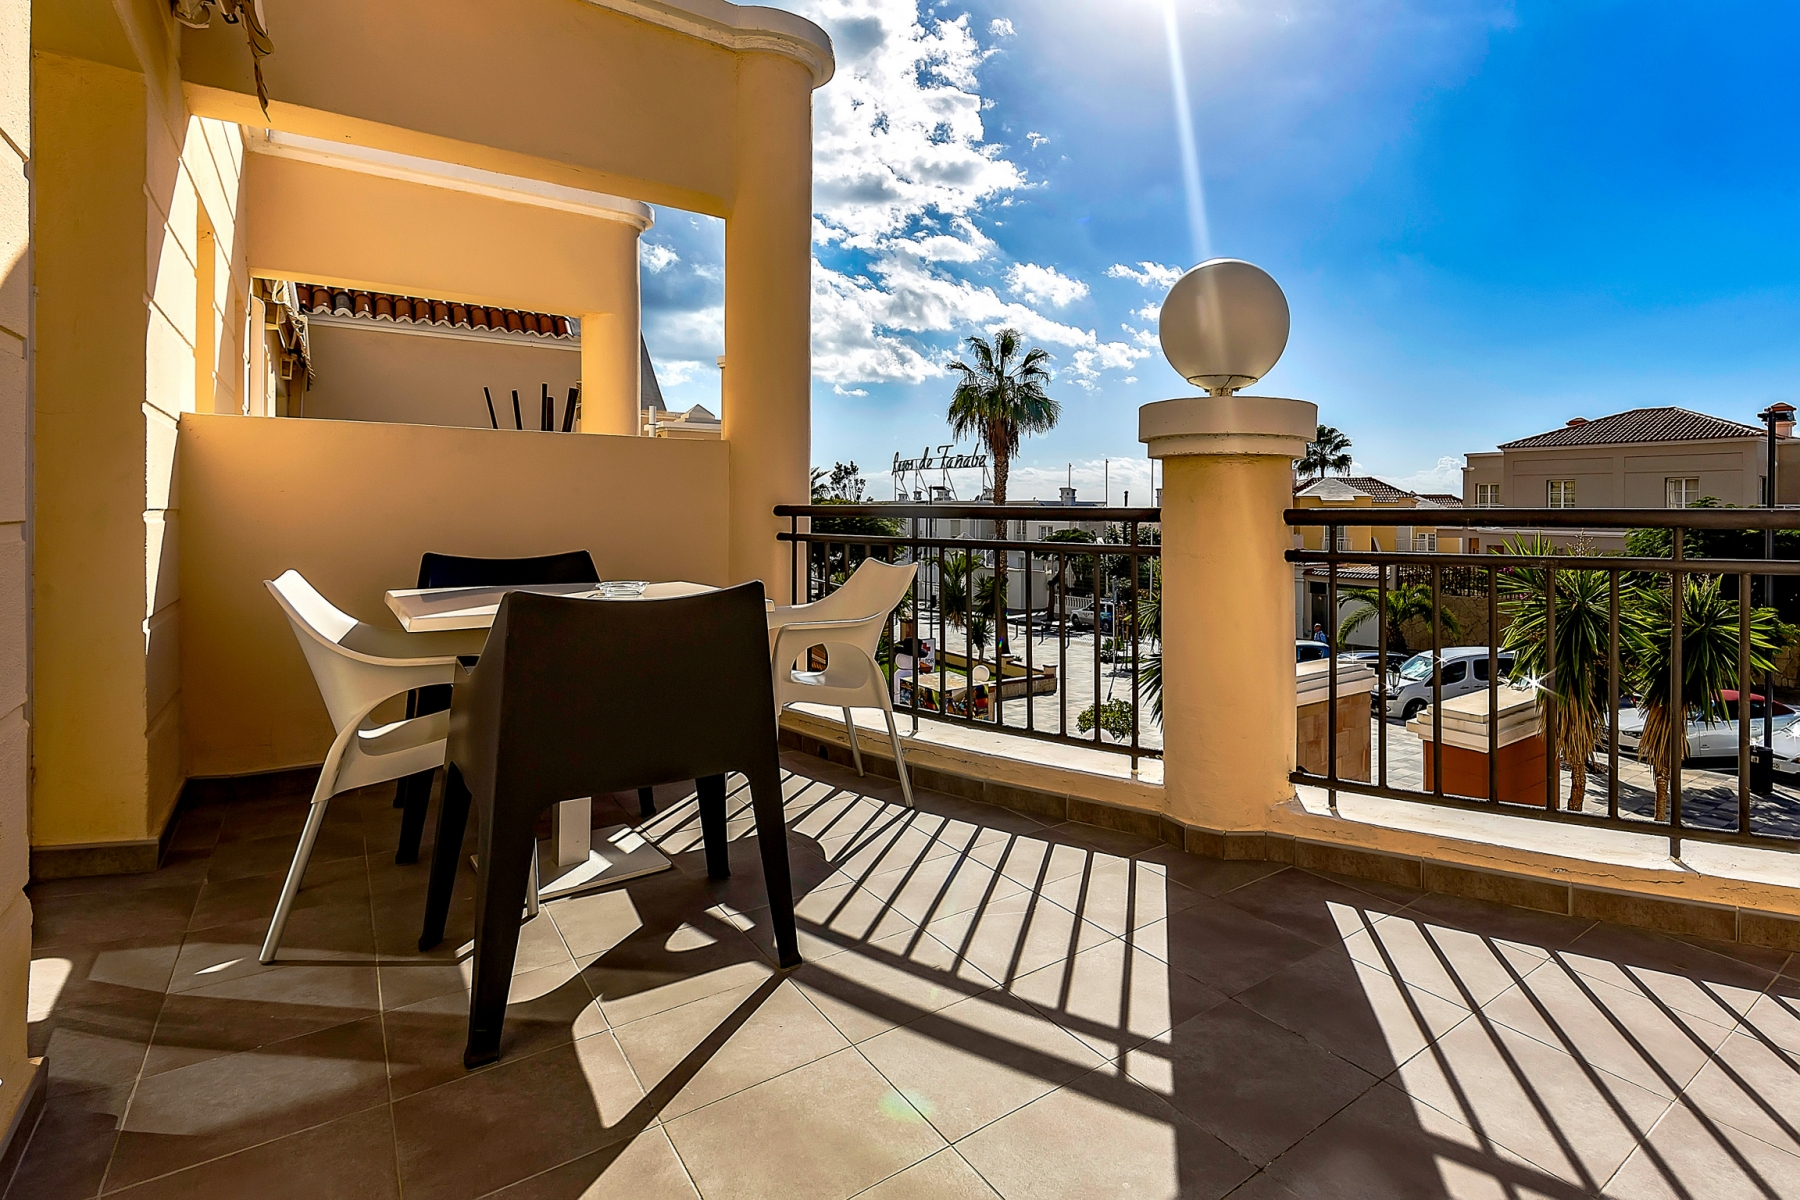 Properties for Sale in Tenerife, Canary Islands, Spain | SylkWayStar Real Estate. 1 bedroom apartment Yucca Park. Image-22538